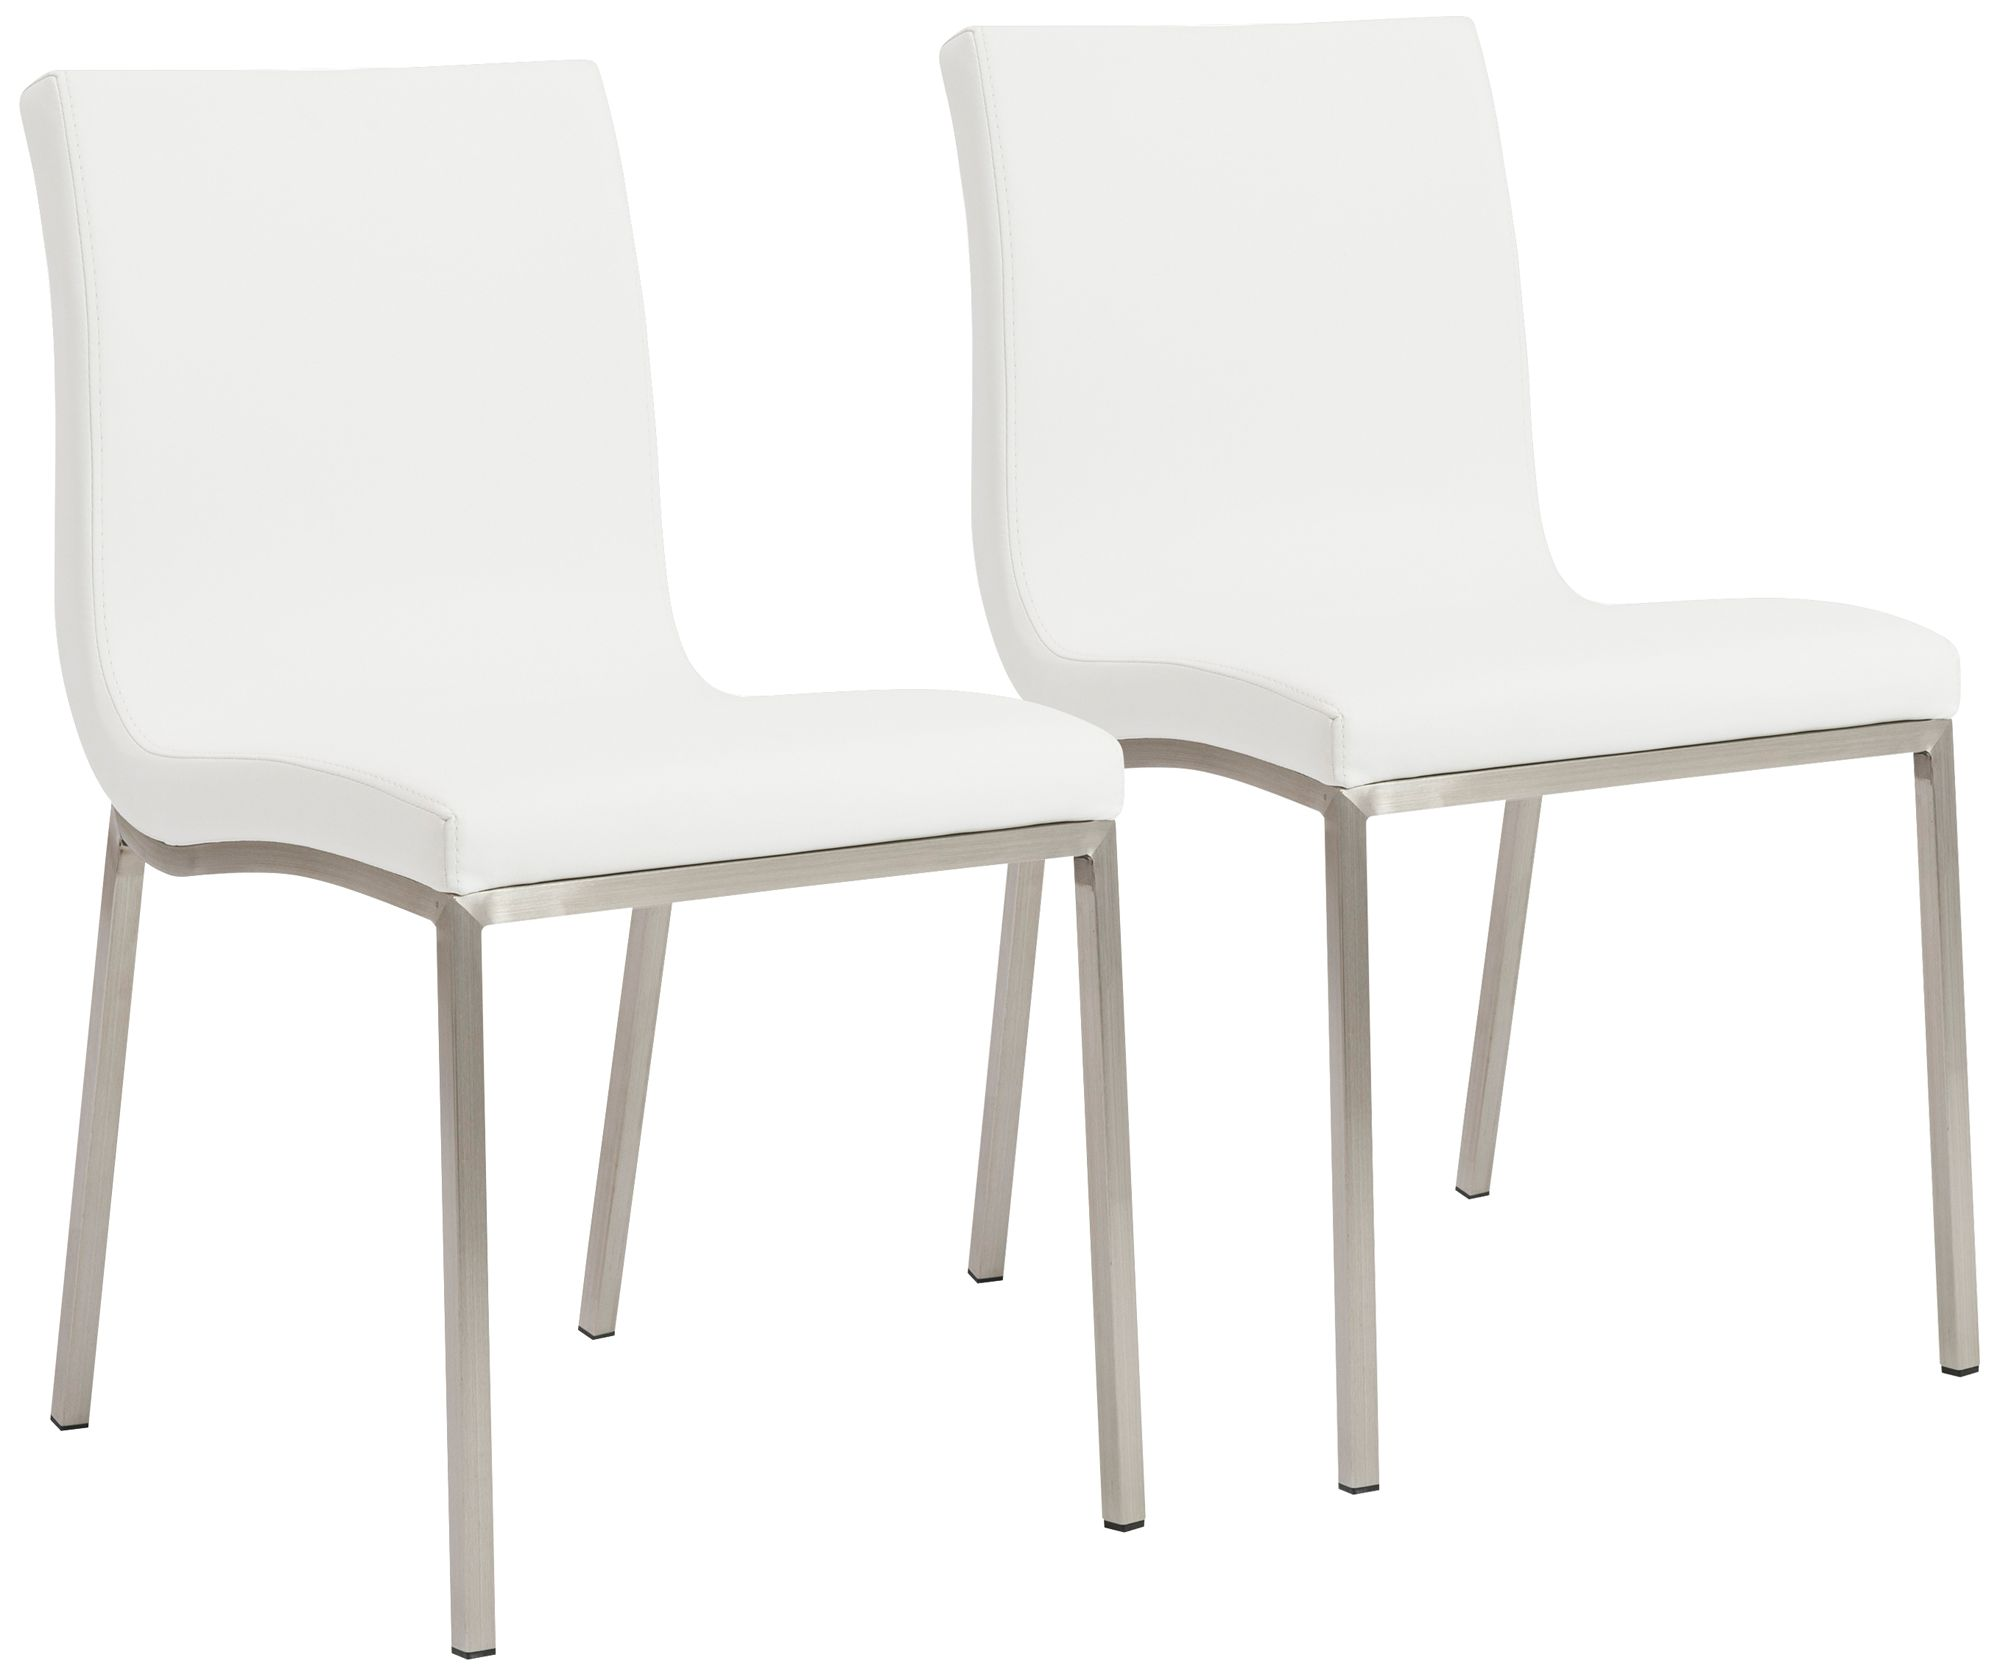 scott steel and white leatherette dining chair set of 2